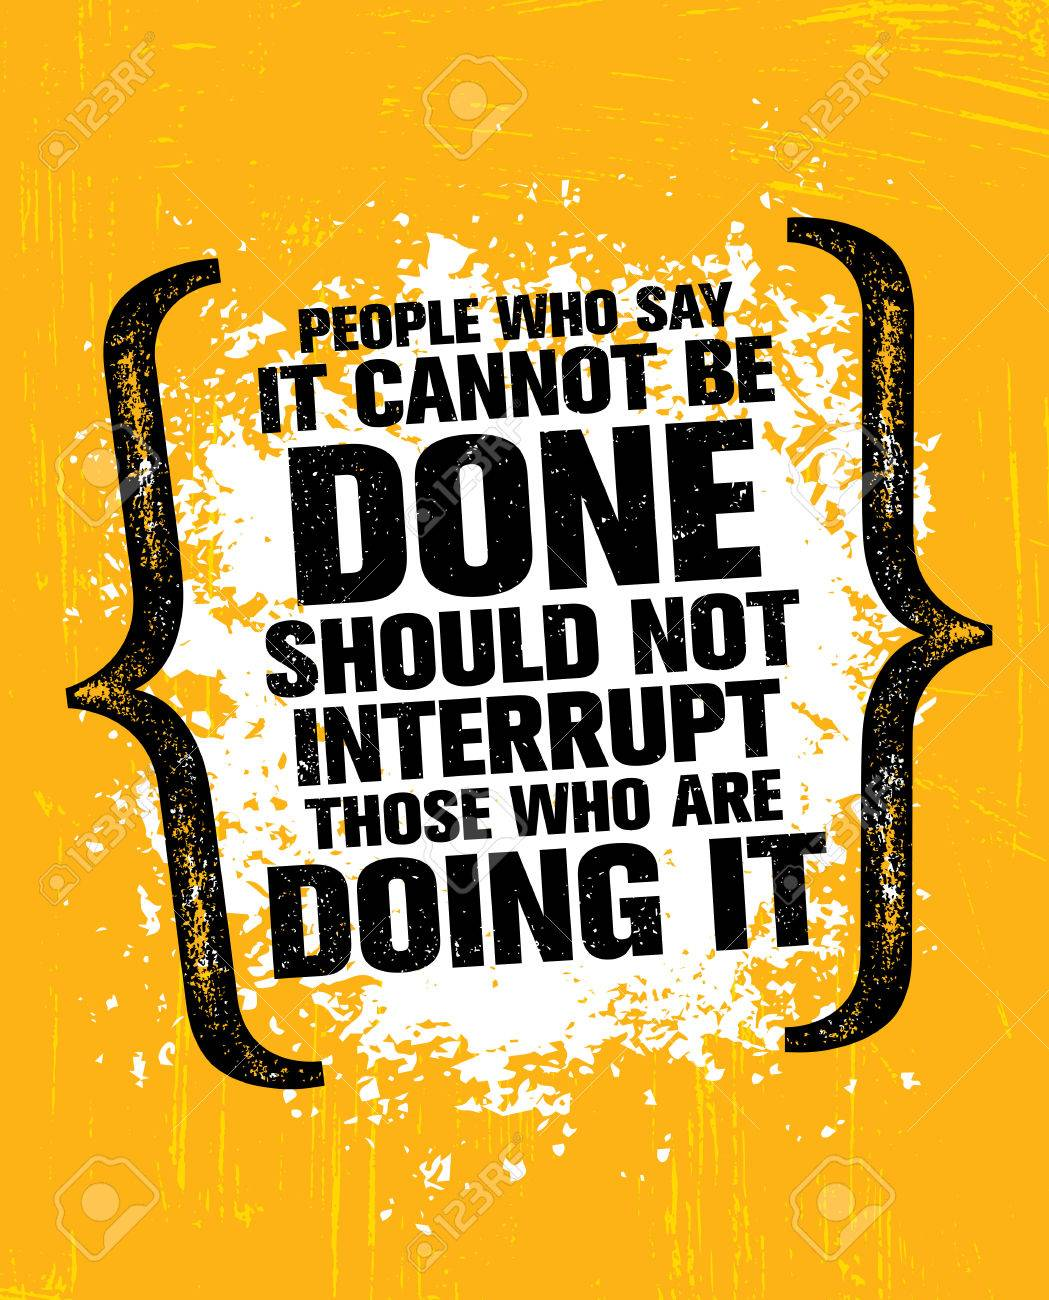 People Who Say It Cannot Be Done Should Not Interrupt Those Who Are Doing It. Inspiring Creative Motivation Quote - 74433585